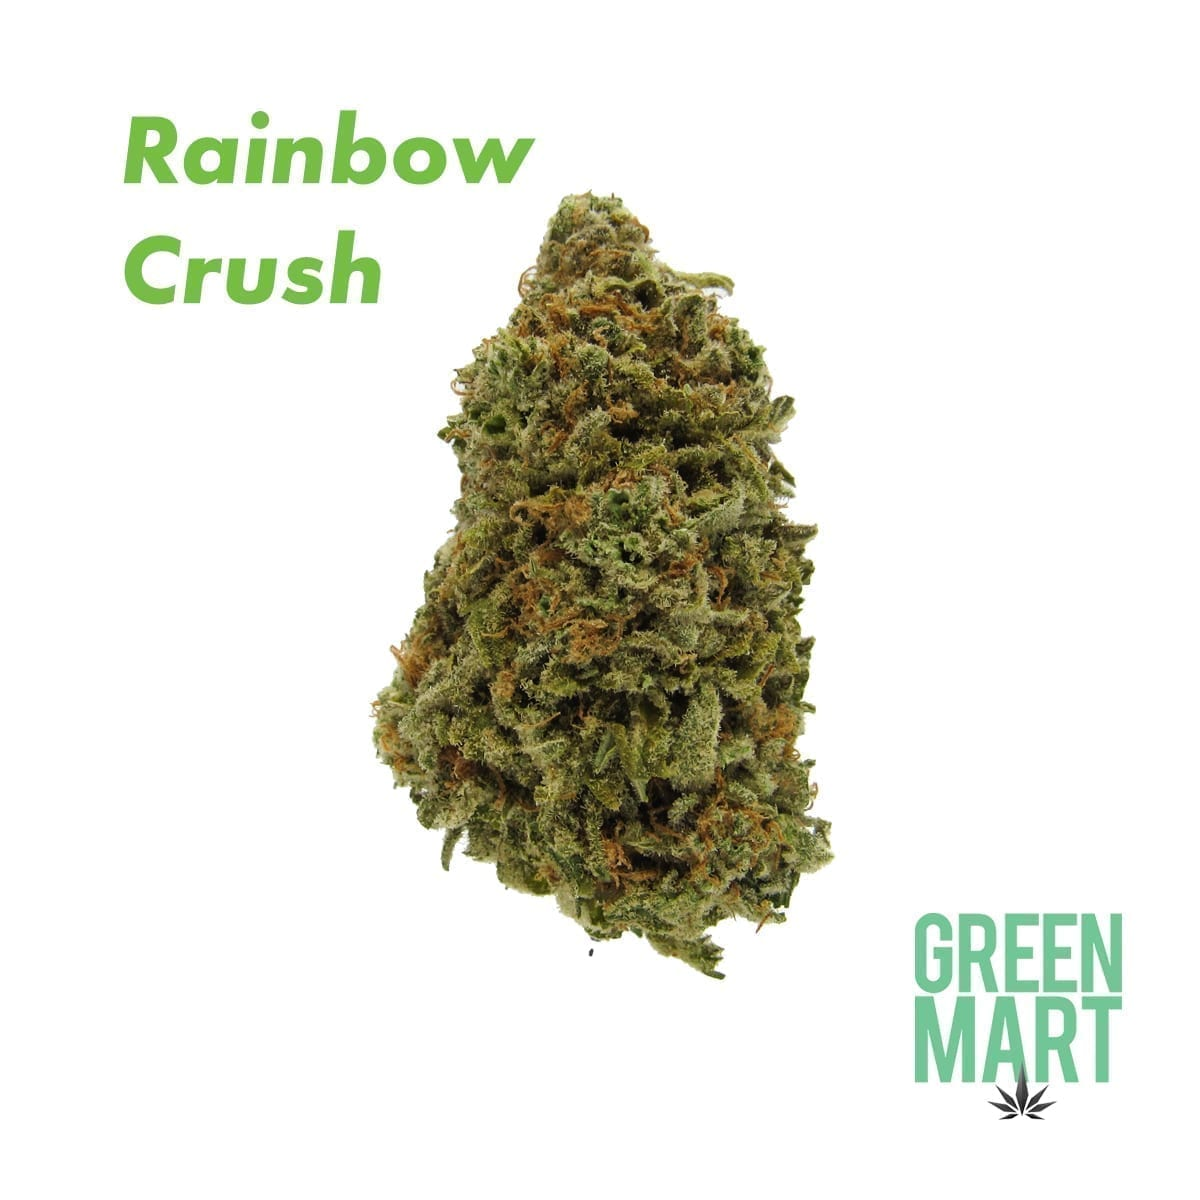 Rainbow Crush